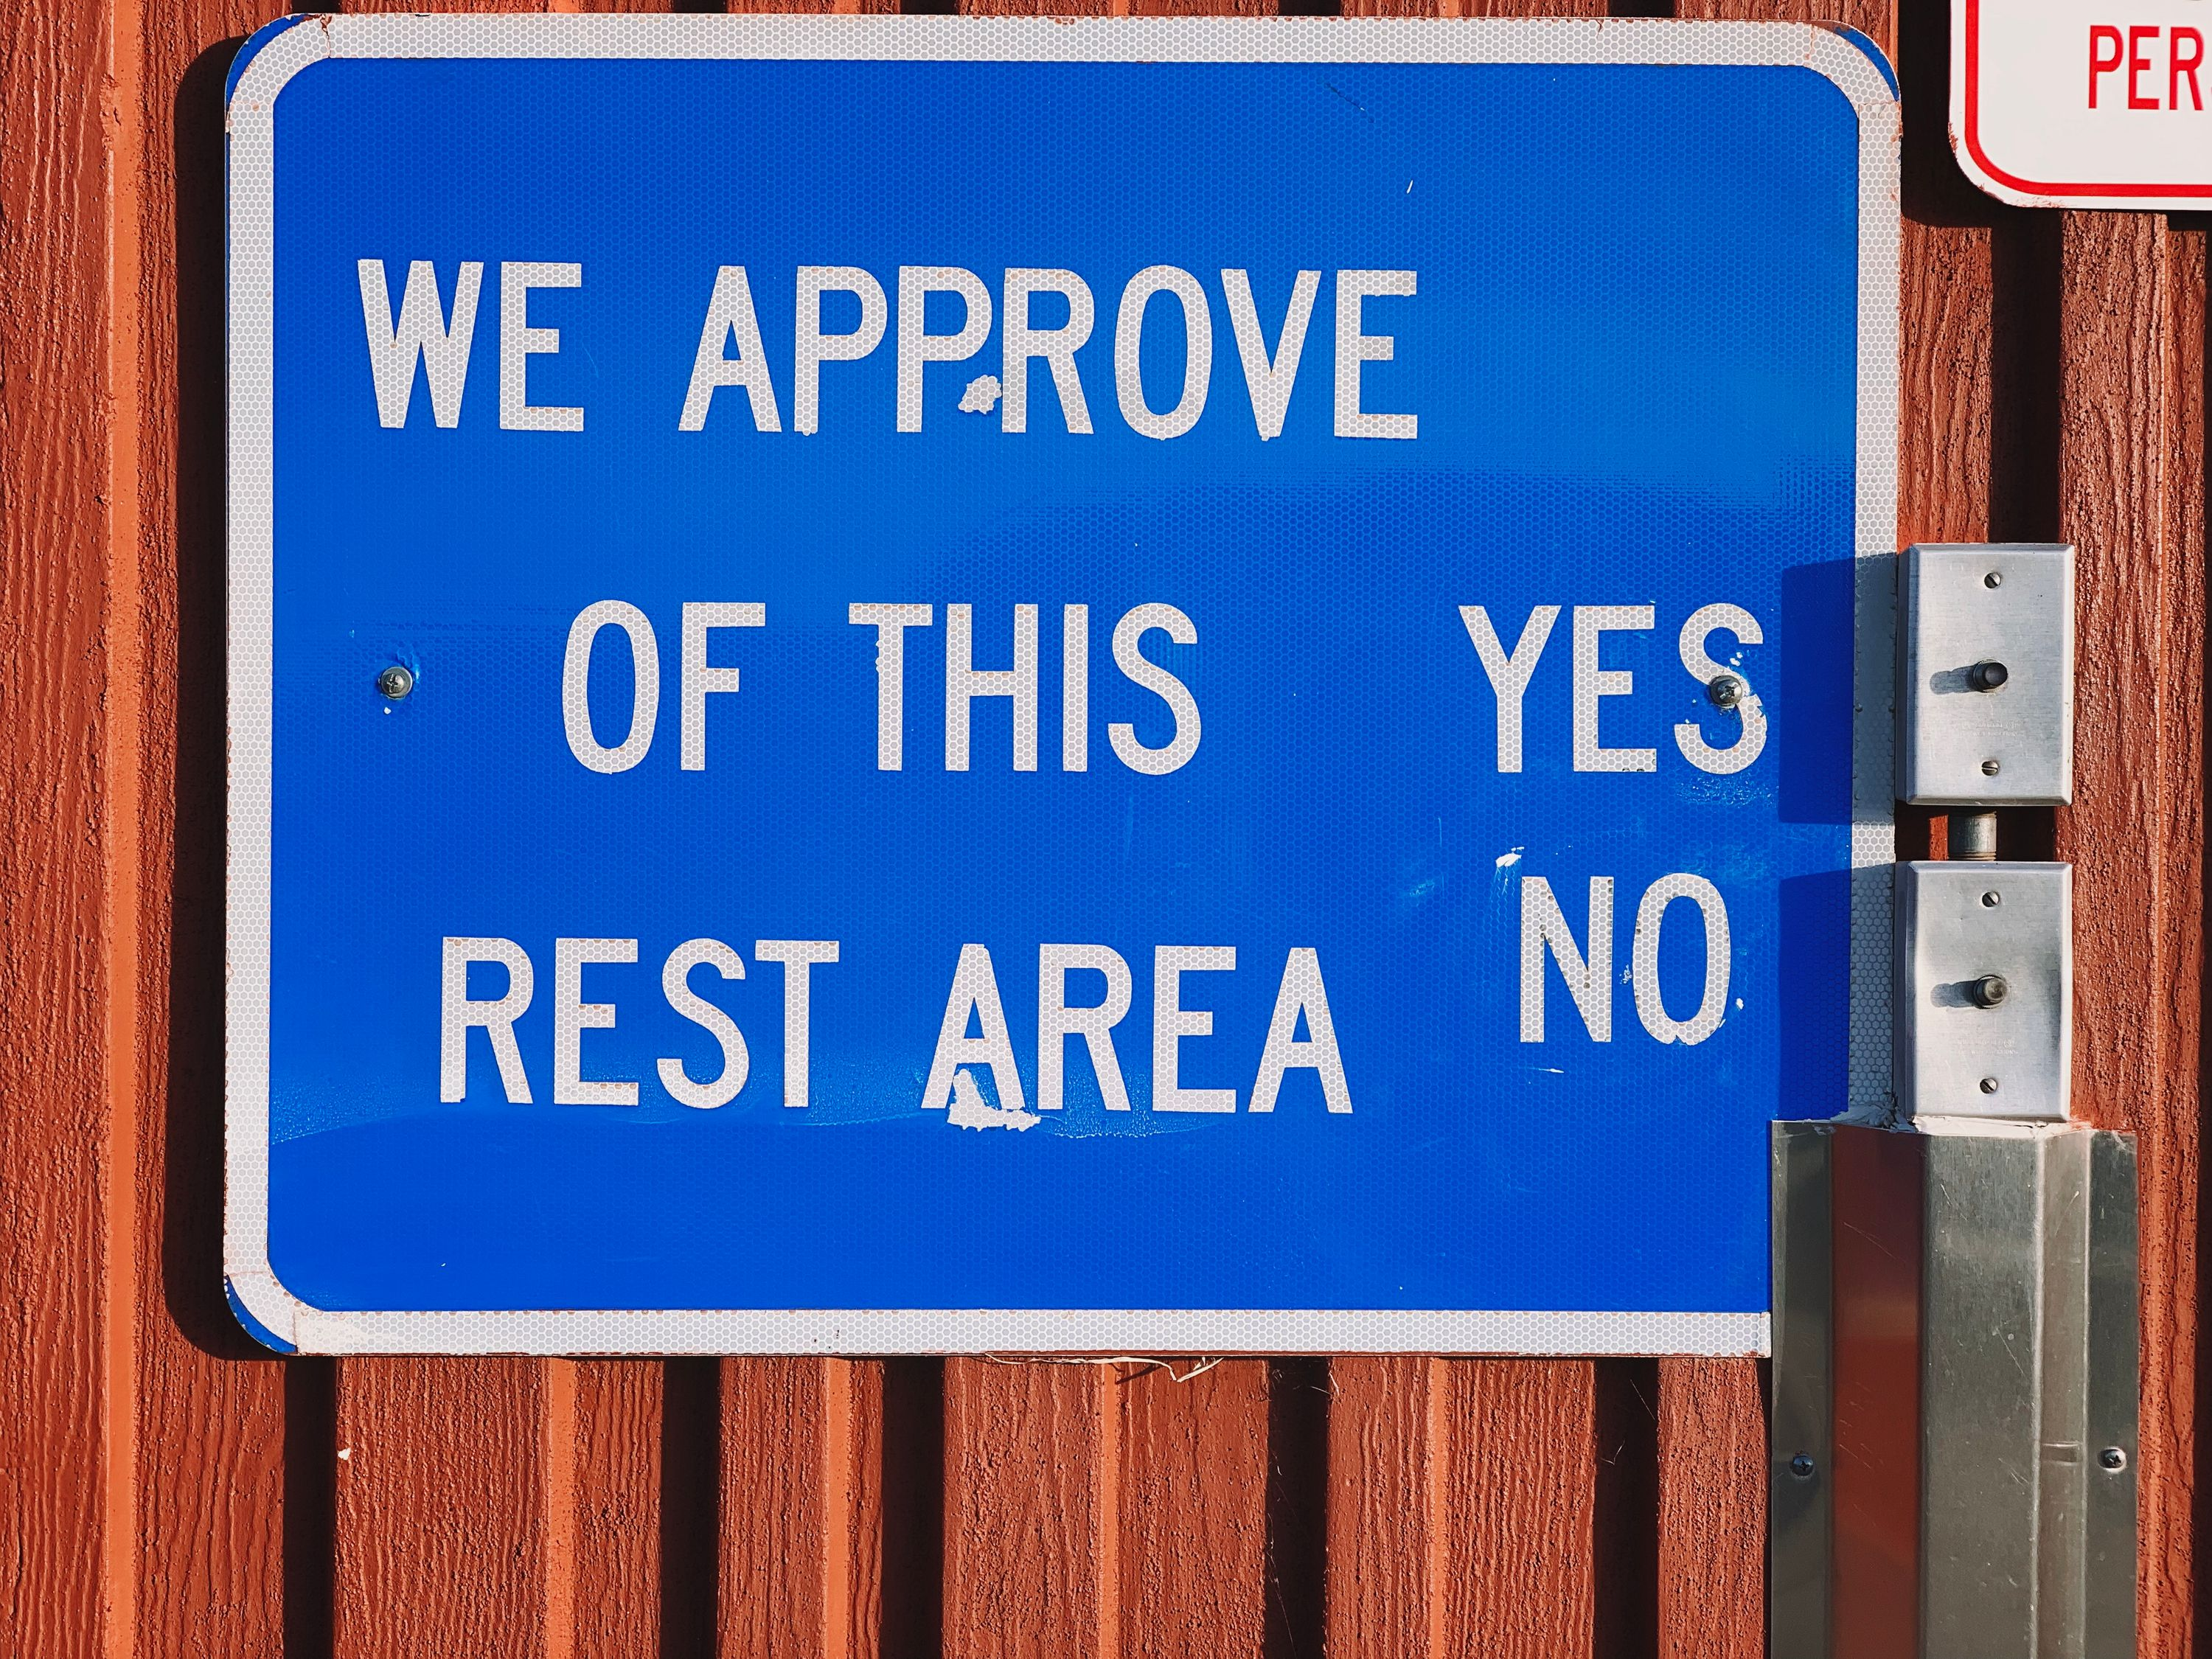 Traveler interaction with a sign requesting your approval at a rest area in Arizona